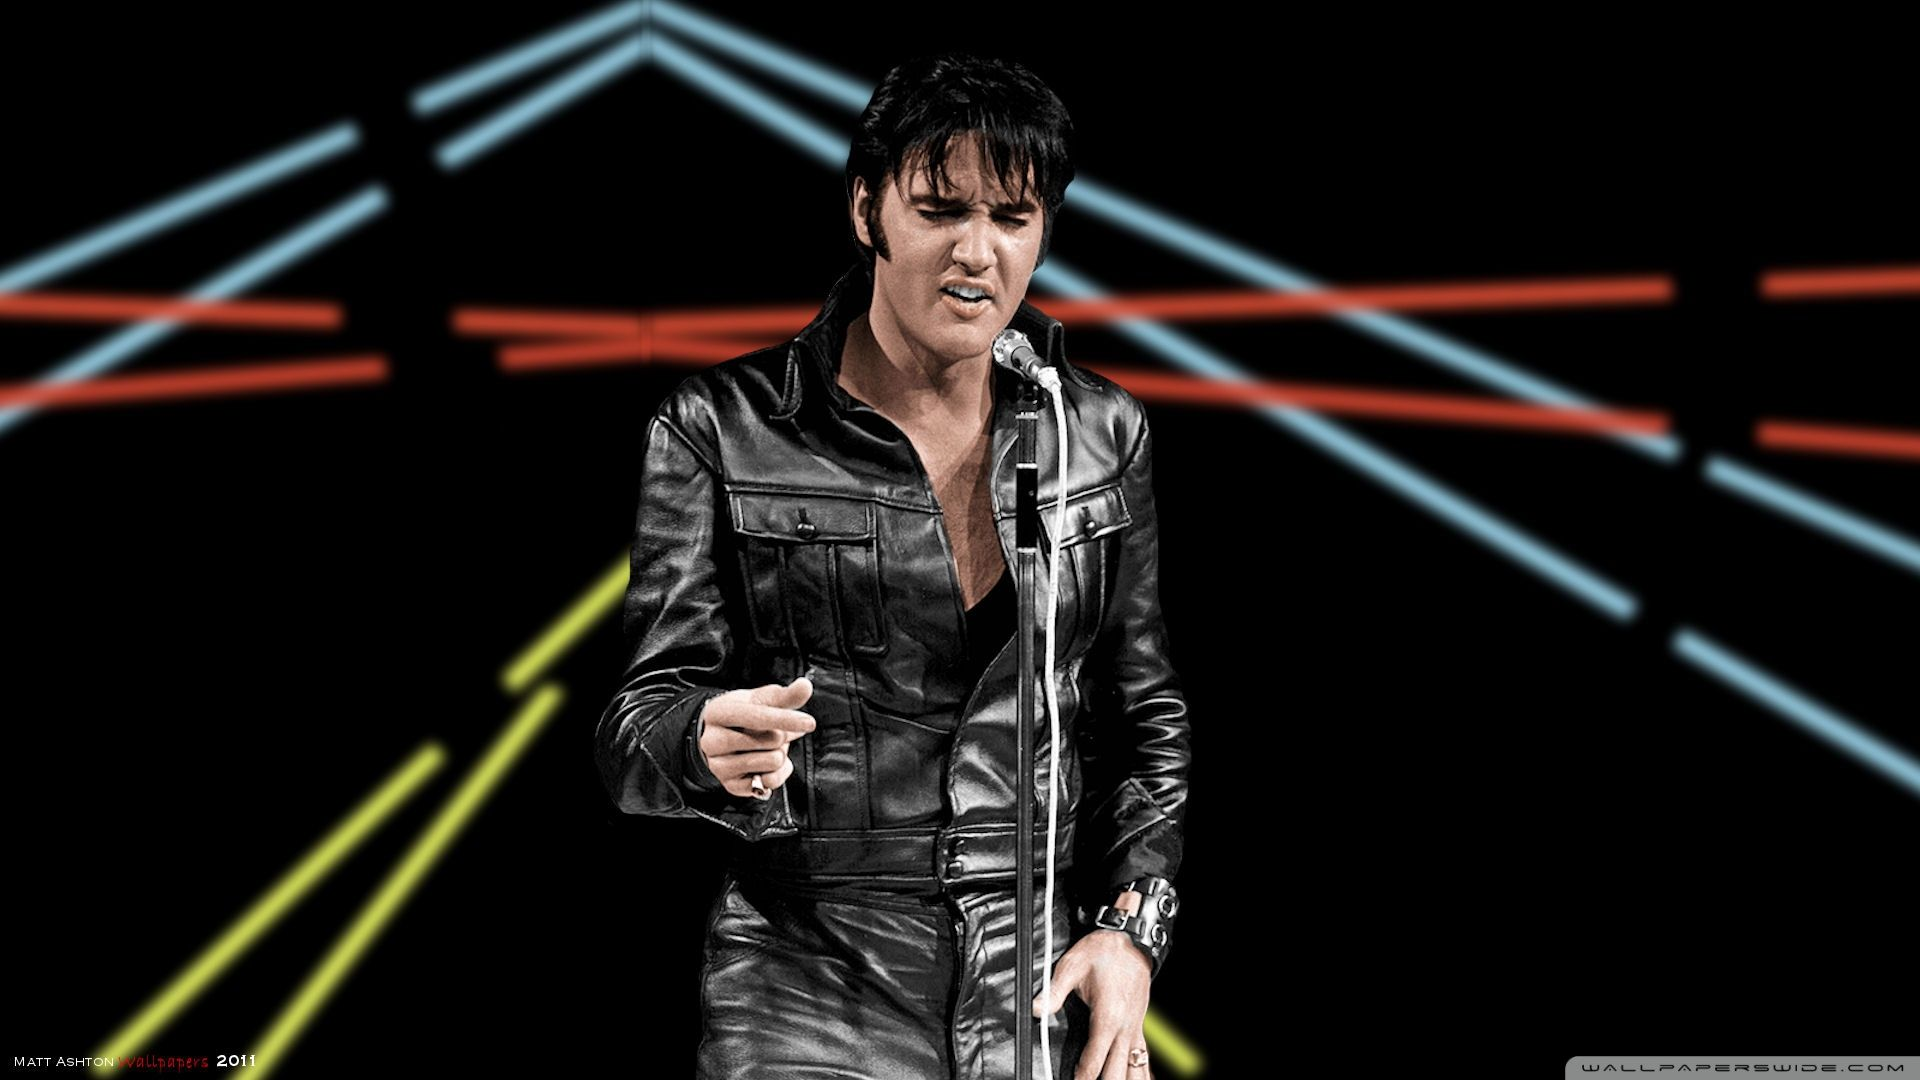 4k Elvis Wallpapers Top Free 4k Elvis Backgrounds Wallpaperaccess